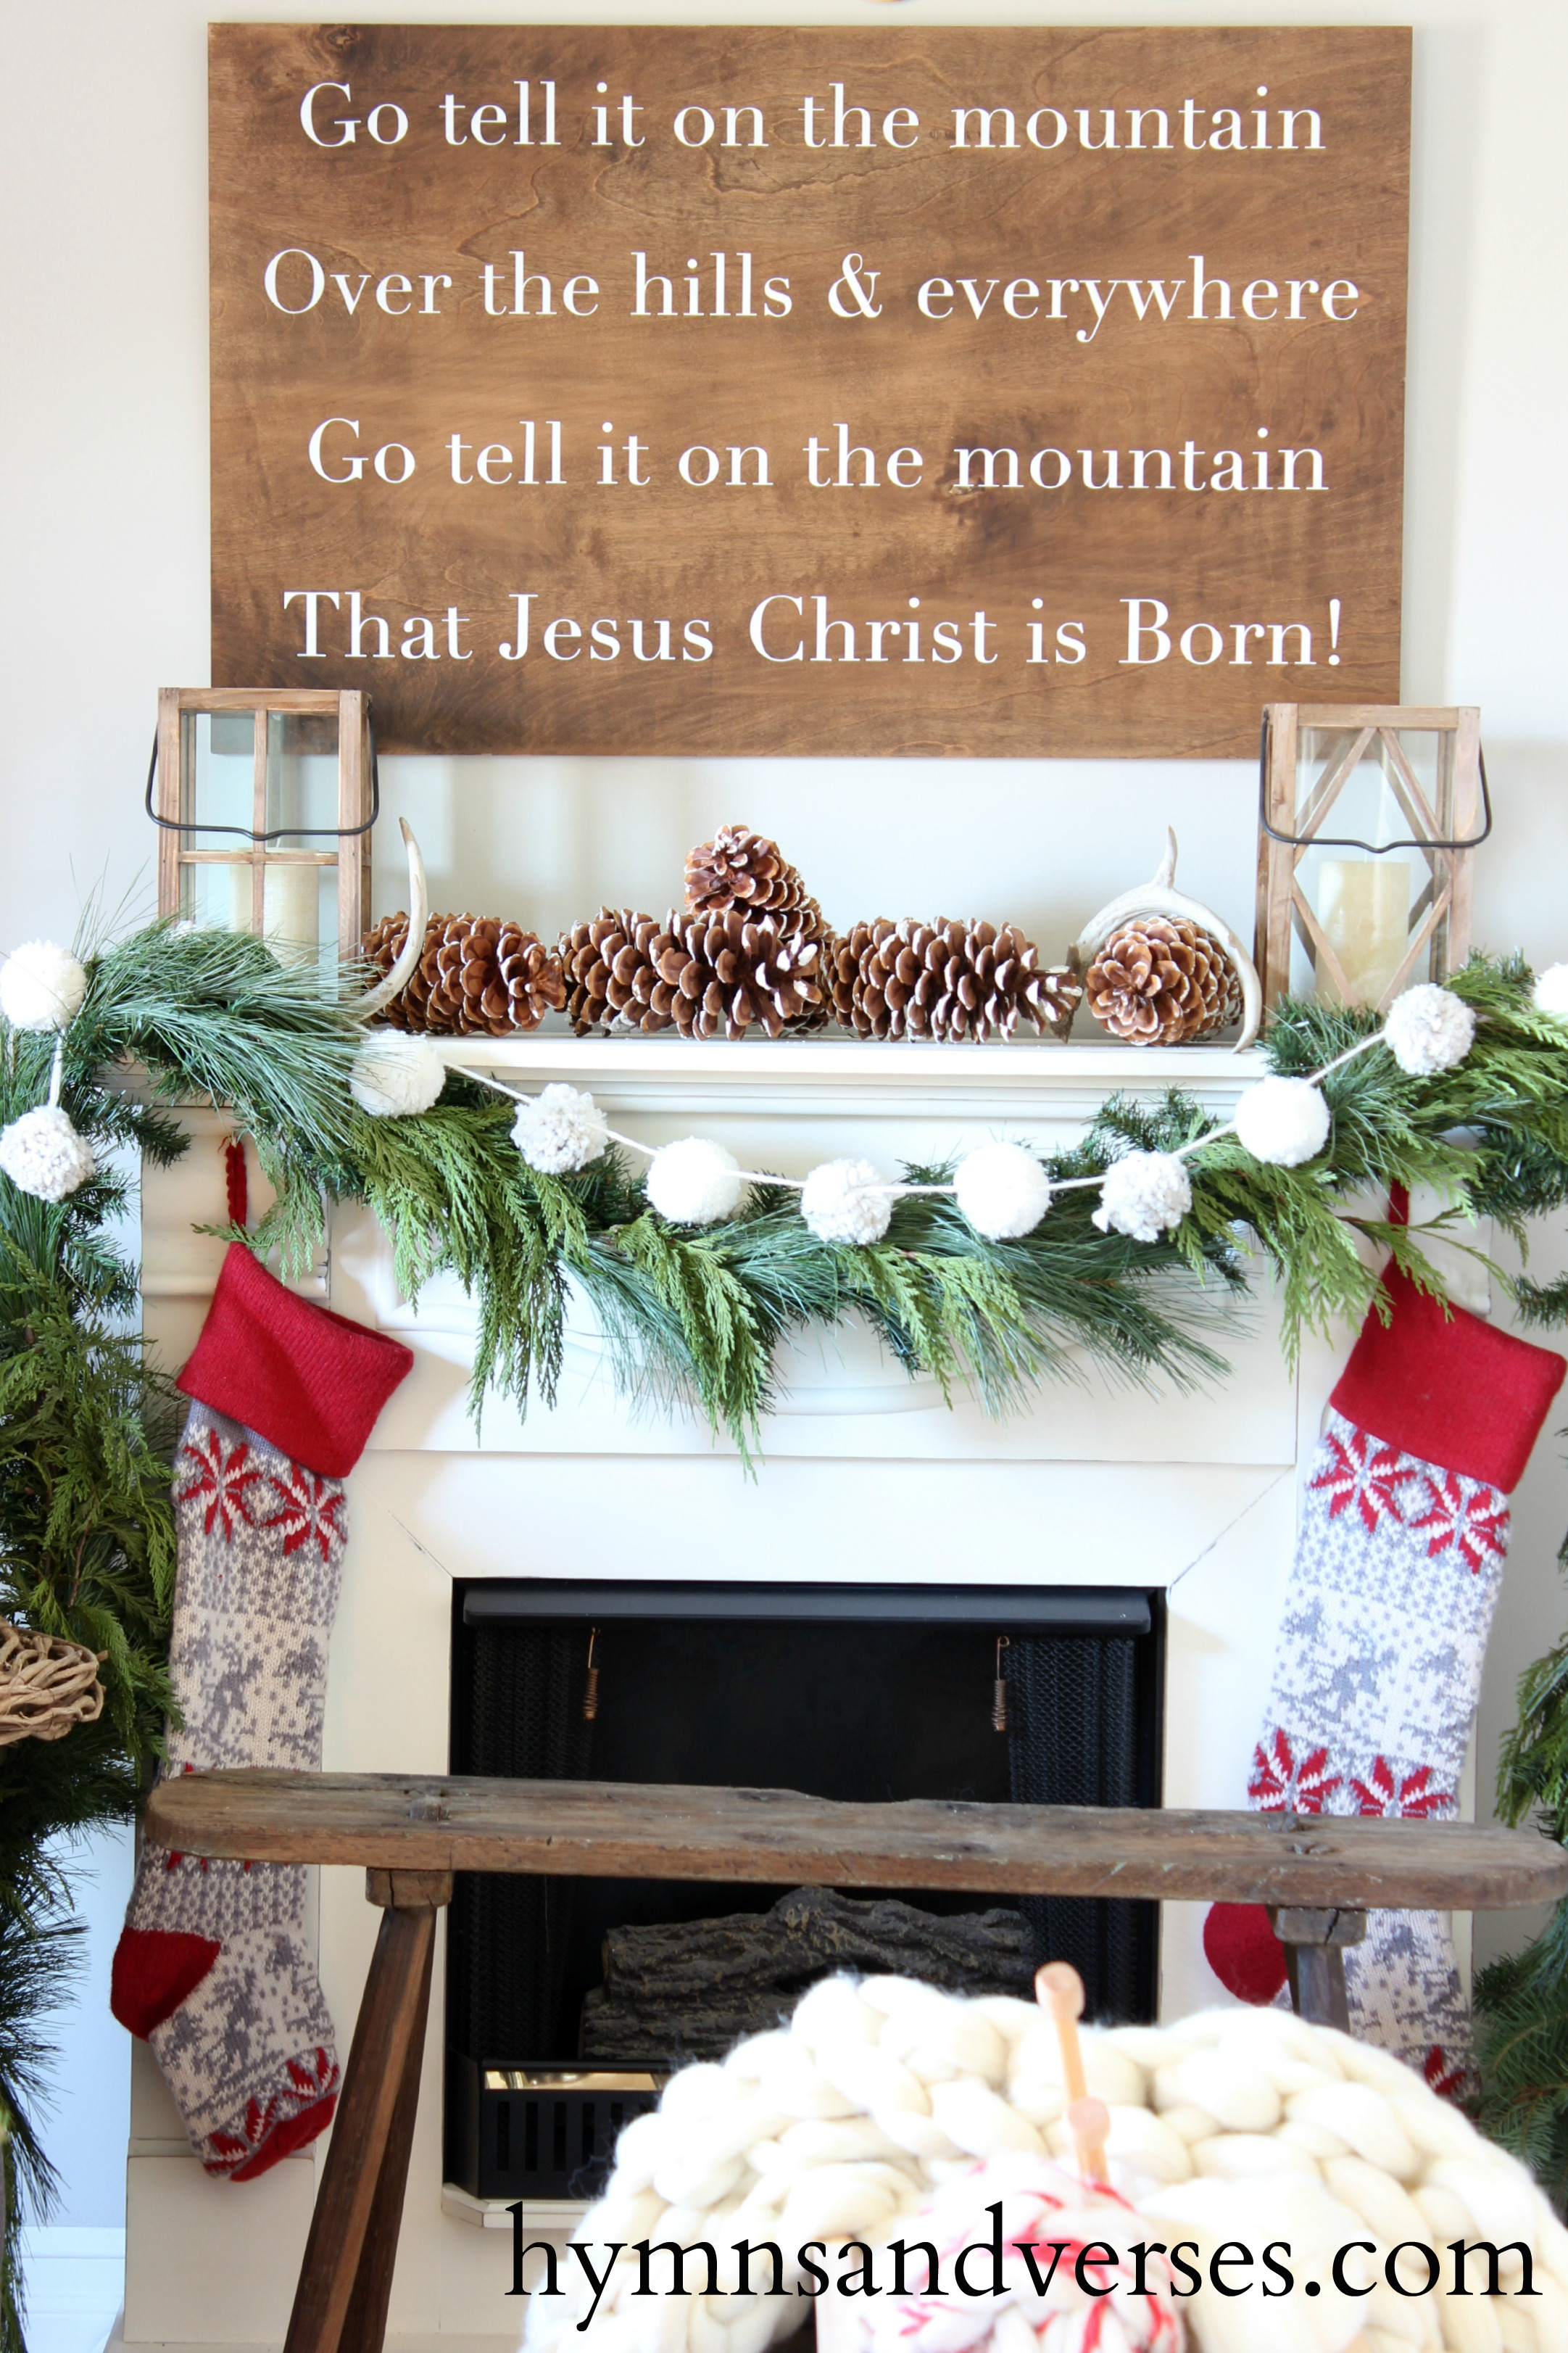 Go Tell it on the Mountain Mantel